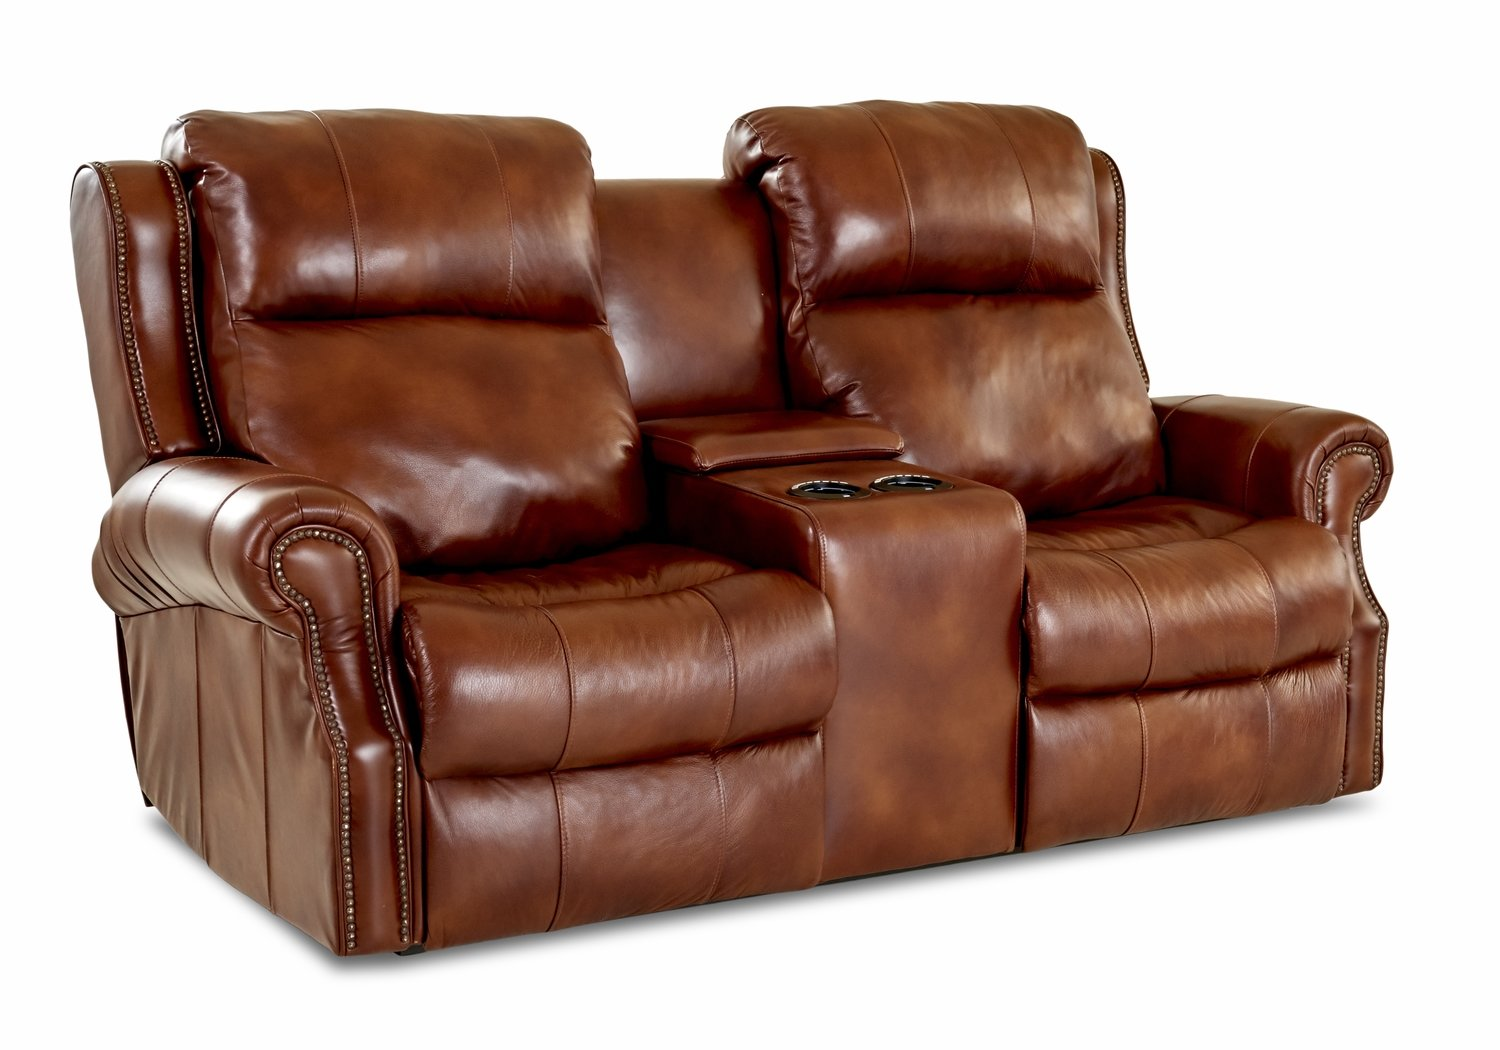 Blue Ridge 4.2 Console Power Reclining Loveseat